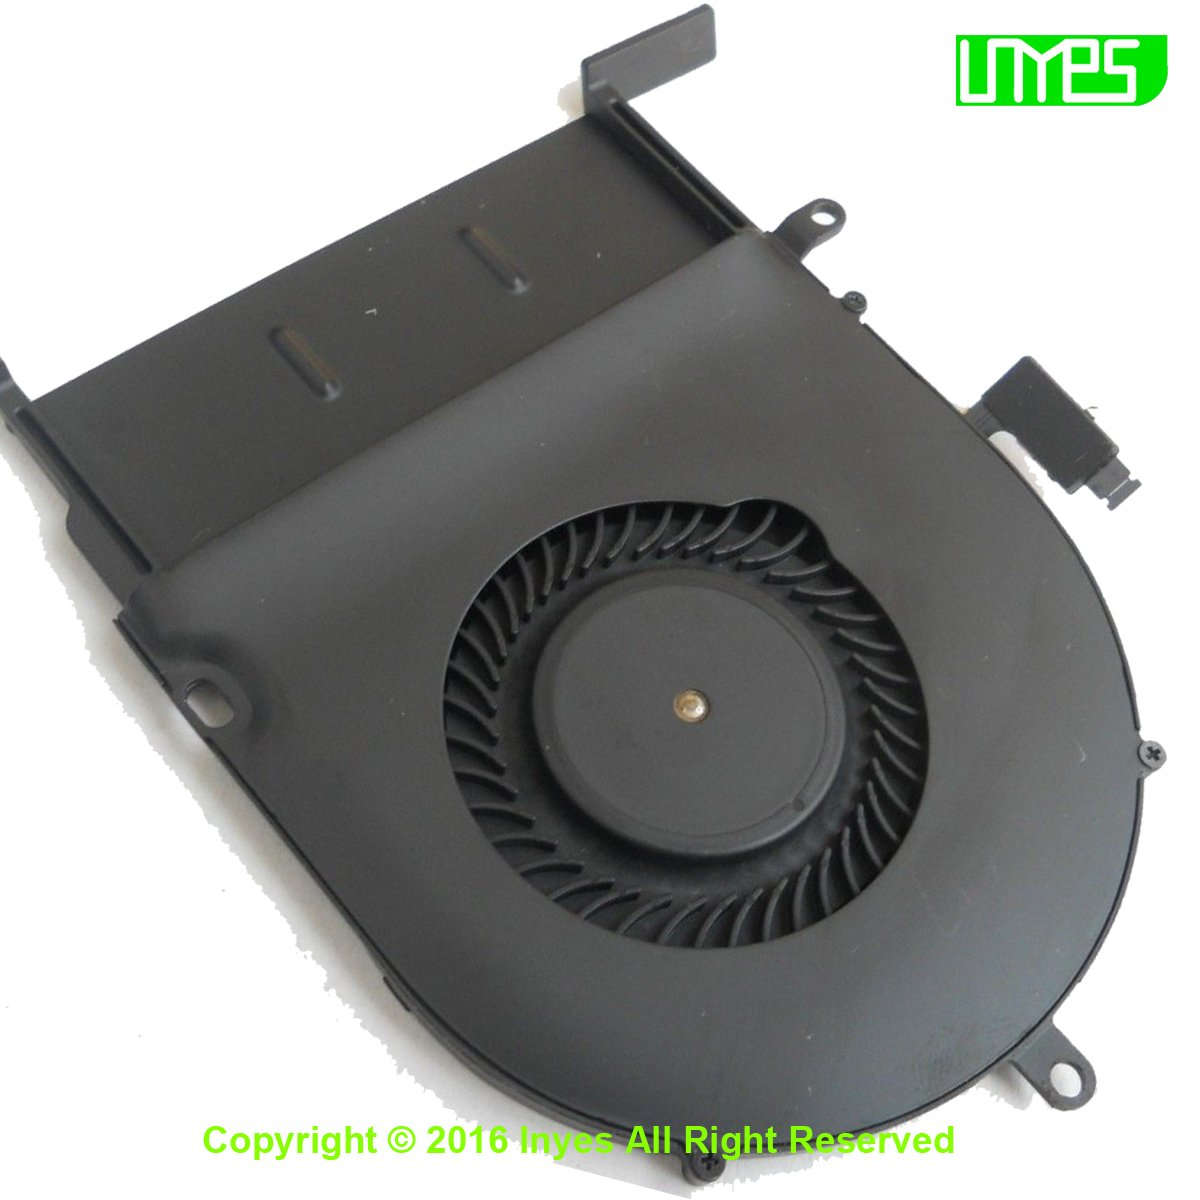 Generic CPU Fan Cooling for MacBook Pro 13'' Retina A1502 Late 2013, Mid 2014, Early 2015 by INYES